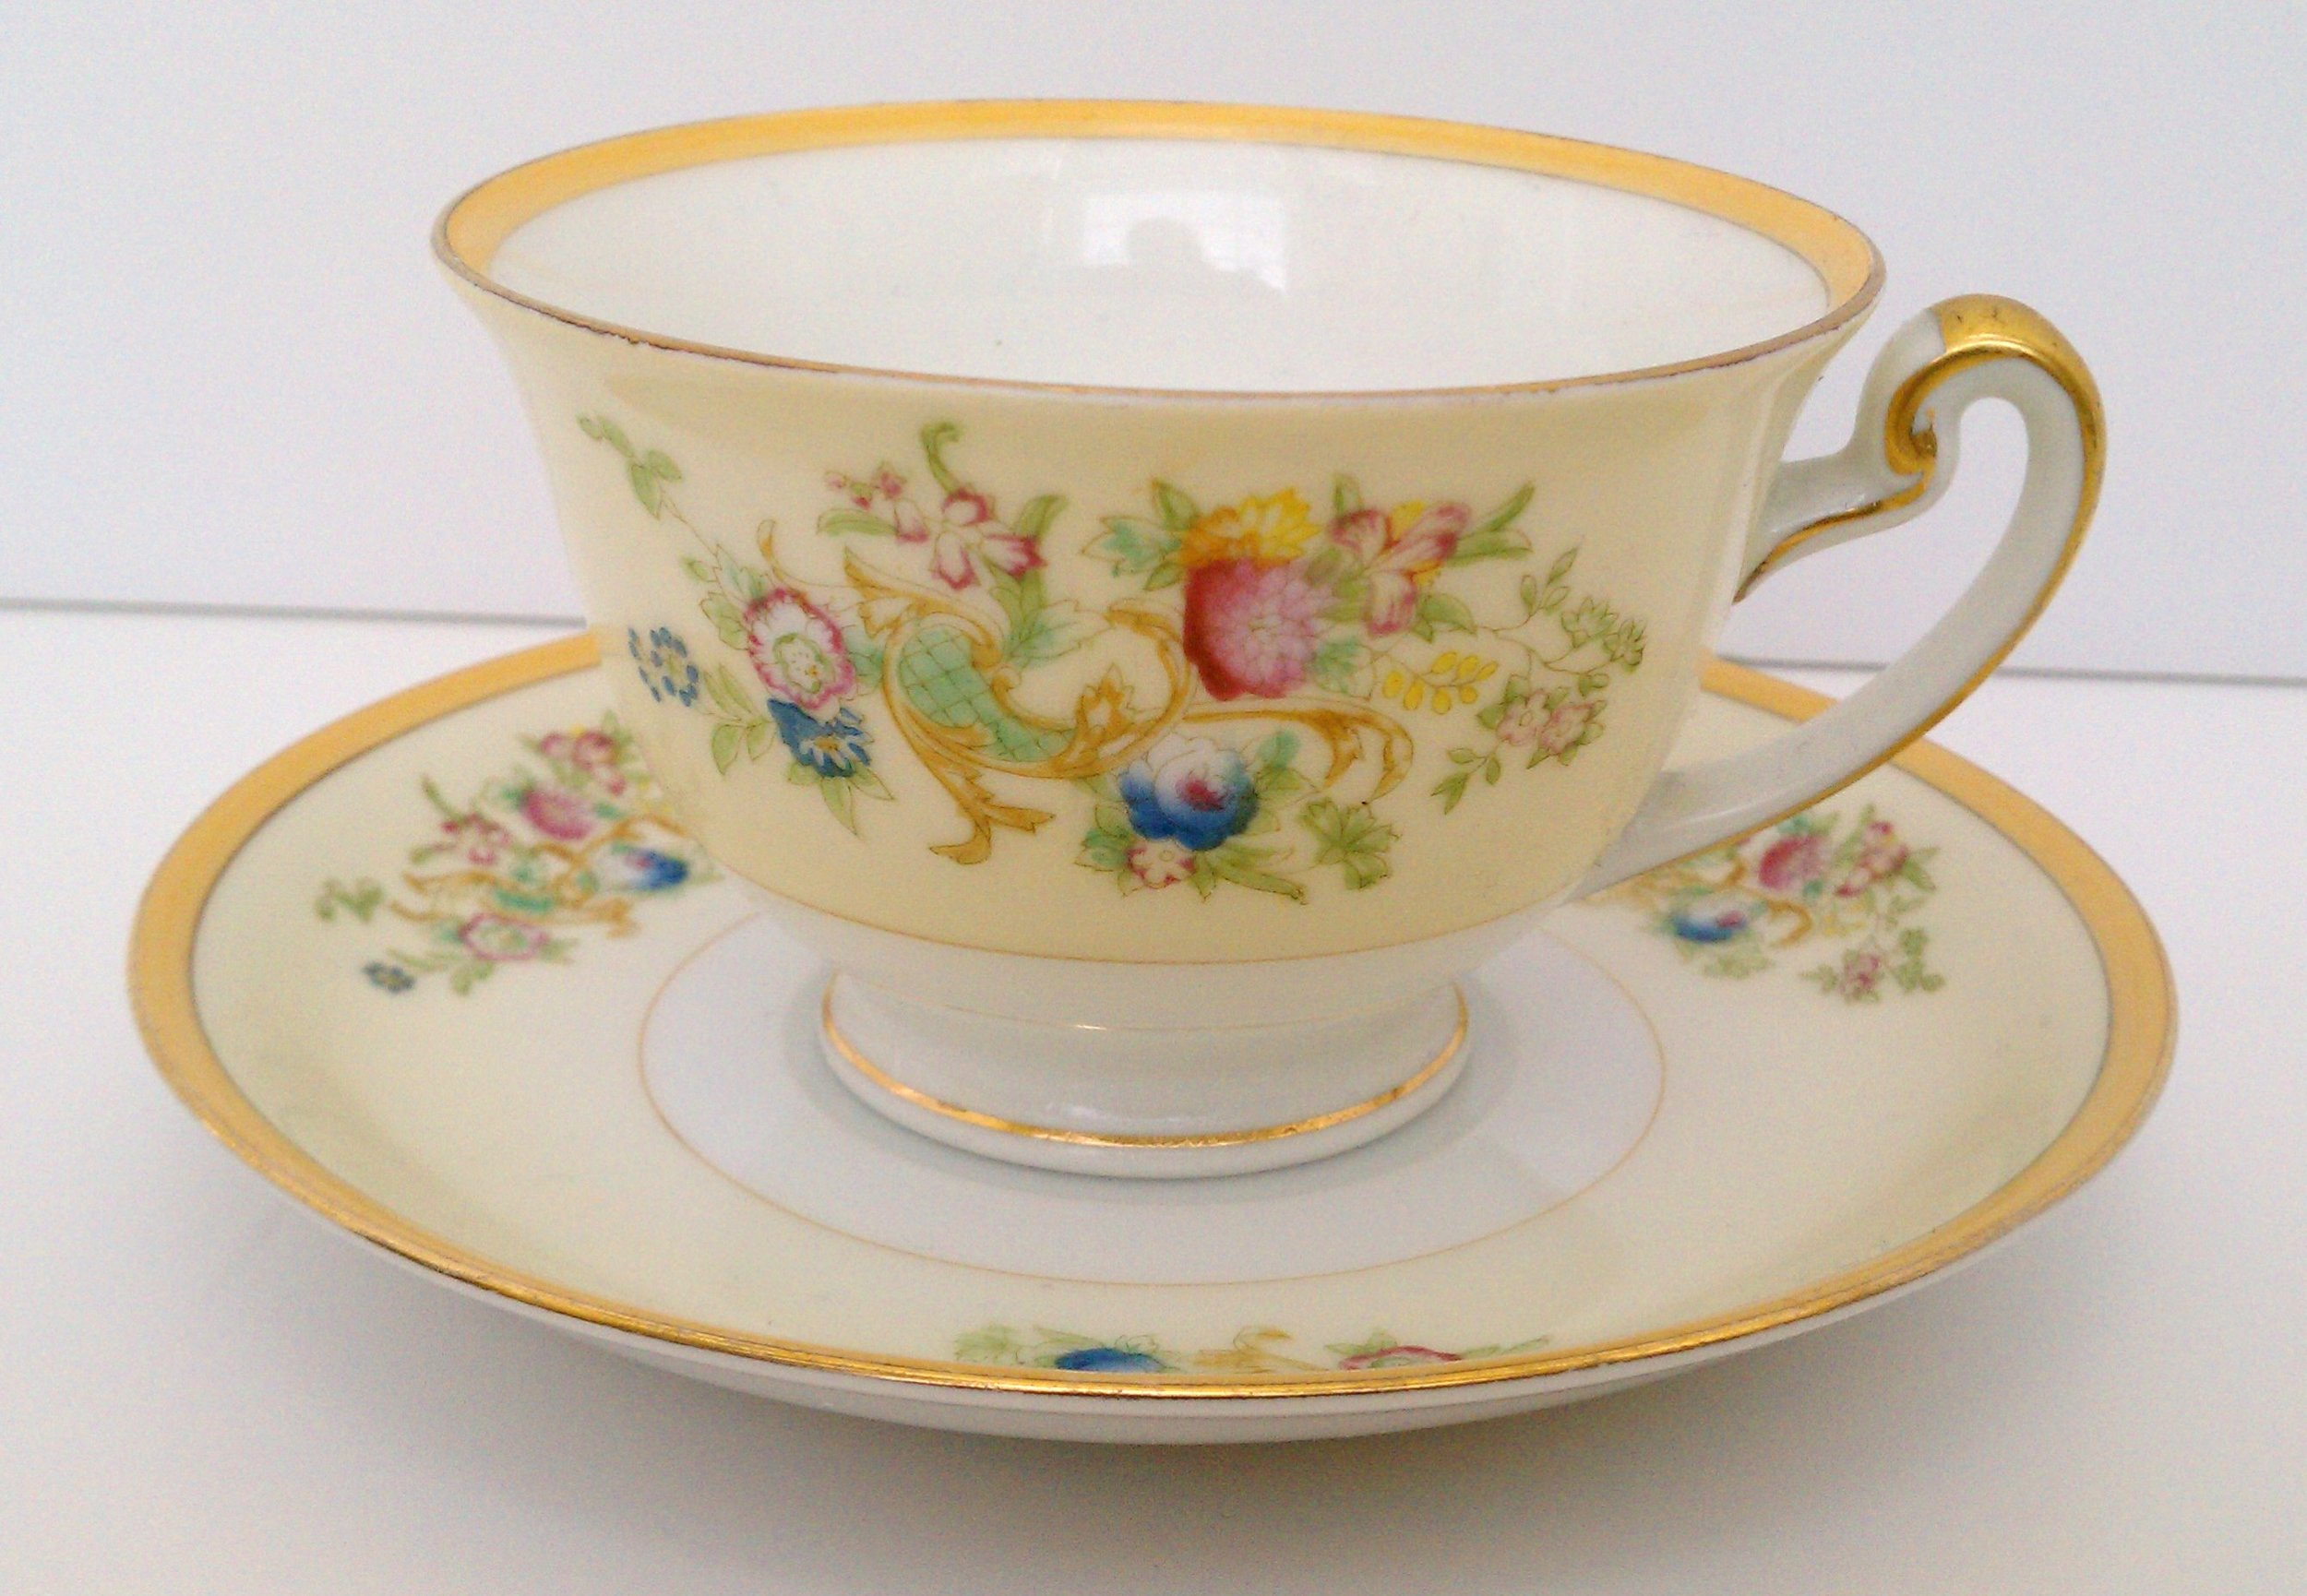 Meito China cup and saucer made in Japan ... pale yellow and white with floral motif and heavy gold trim